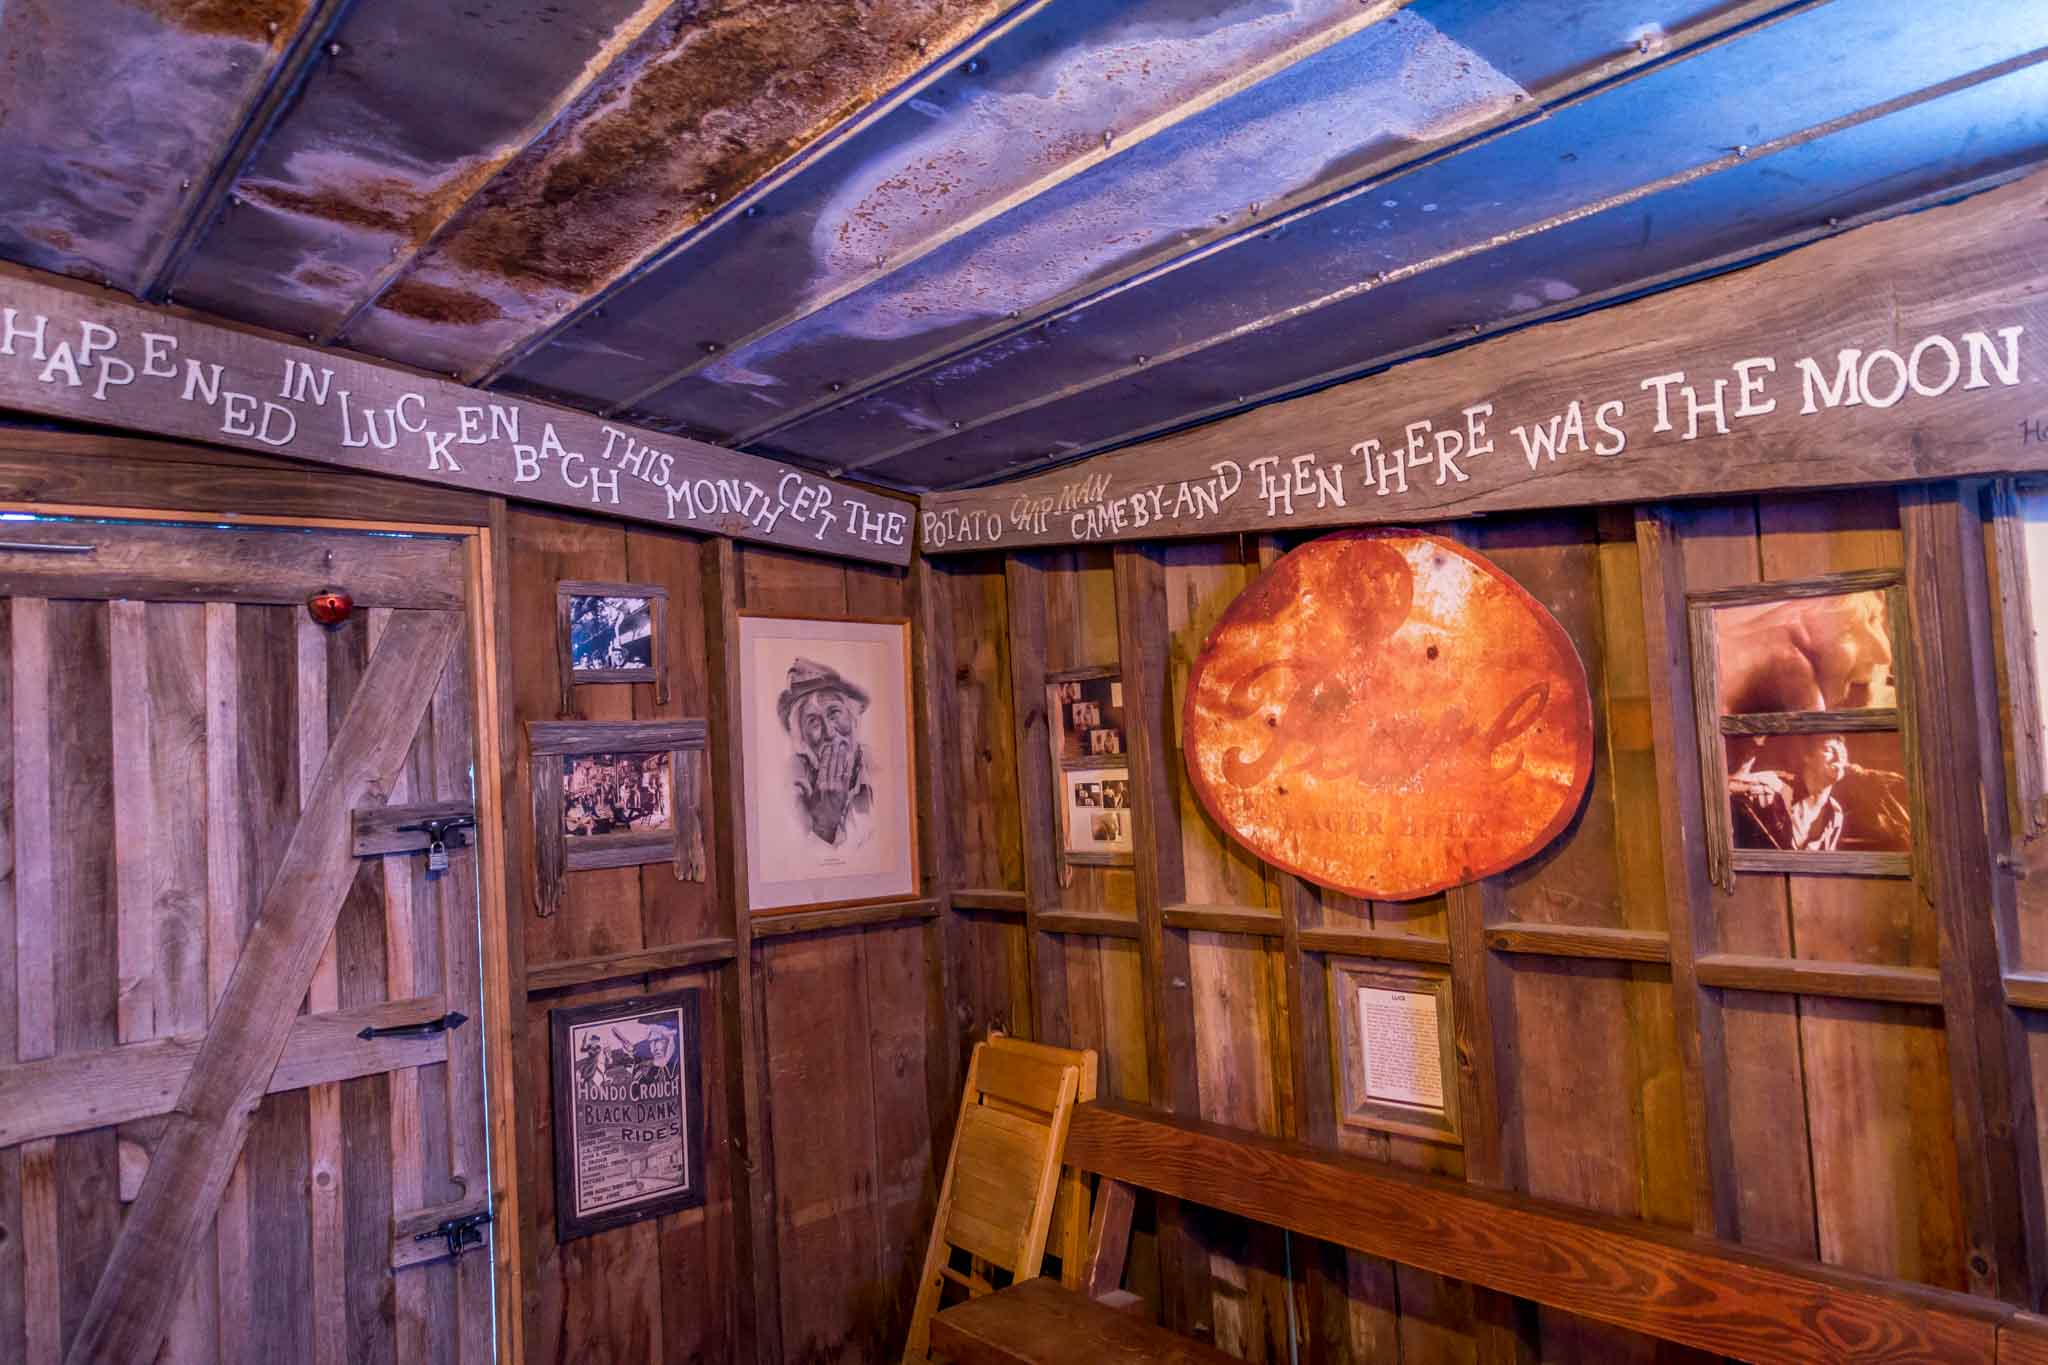 Verse from the poem Luckenbach Moon by Hondo Crouch on the wall in Luckenbach, TX